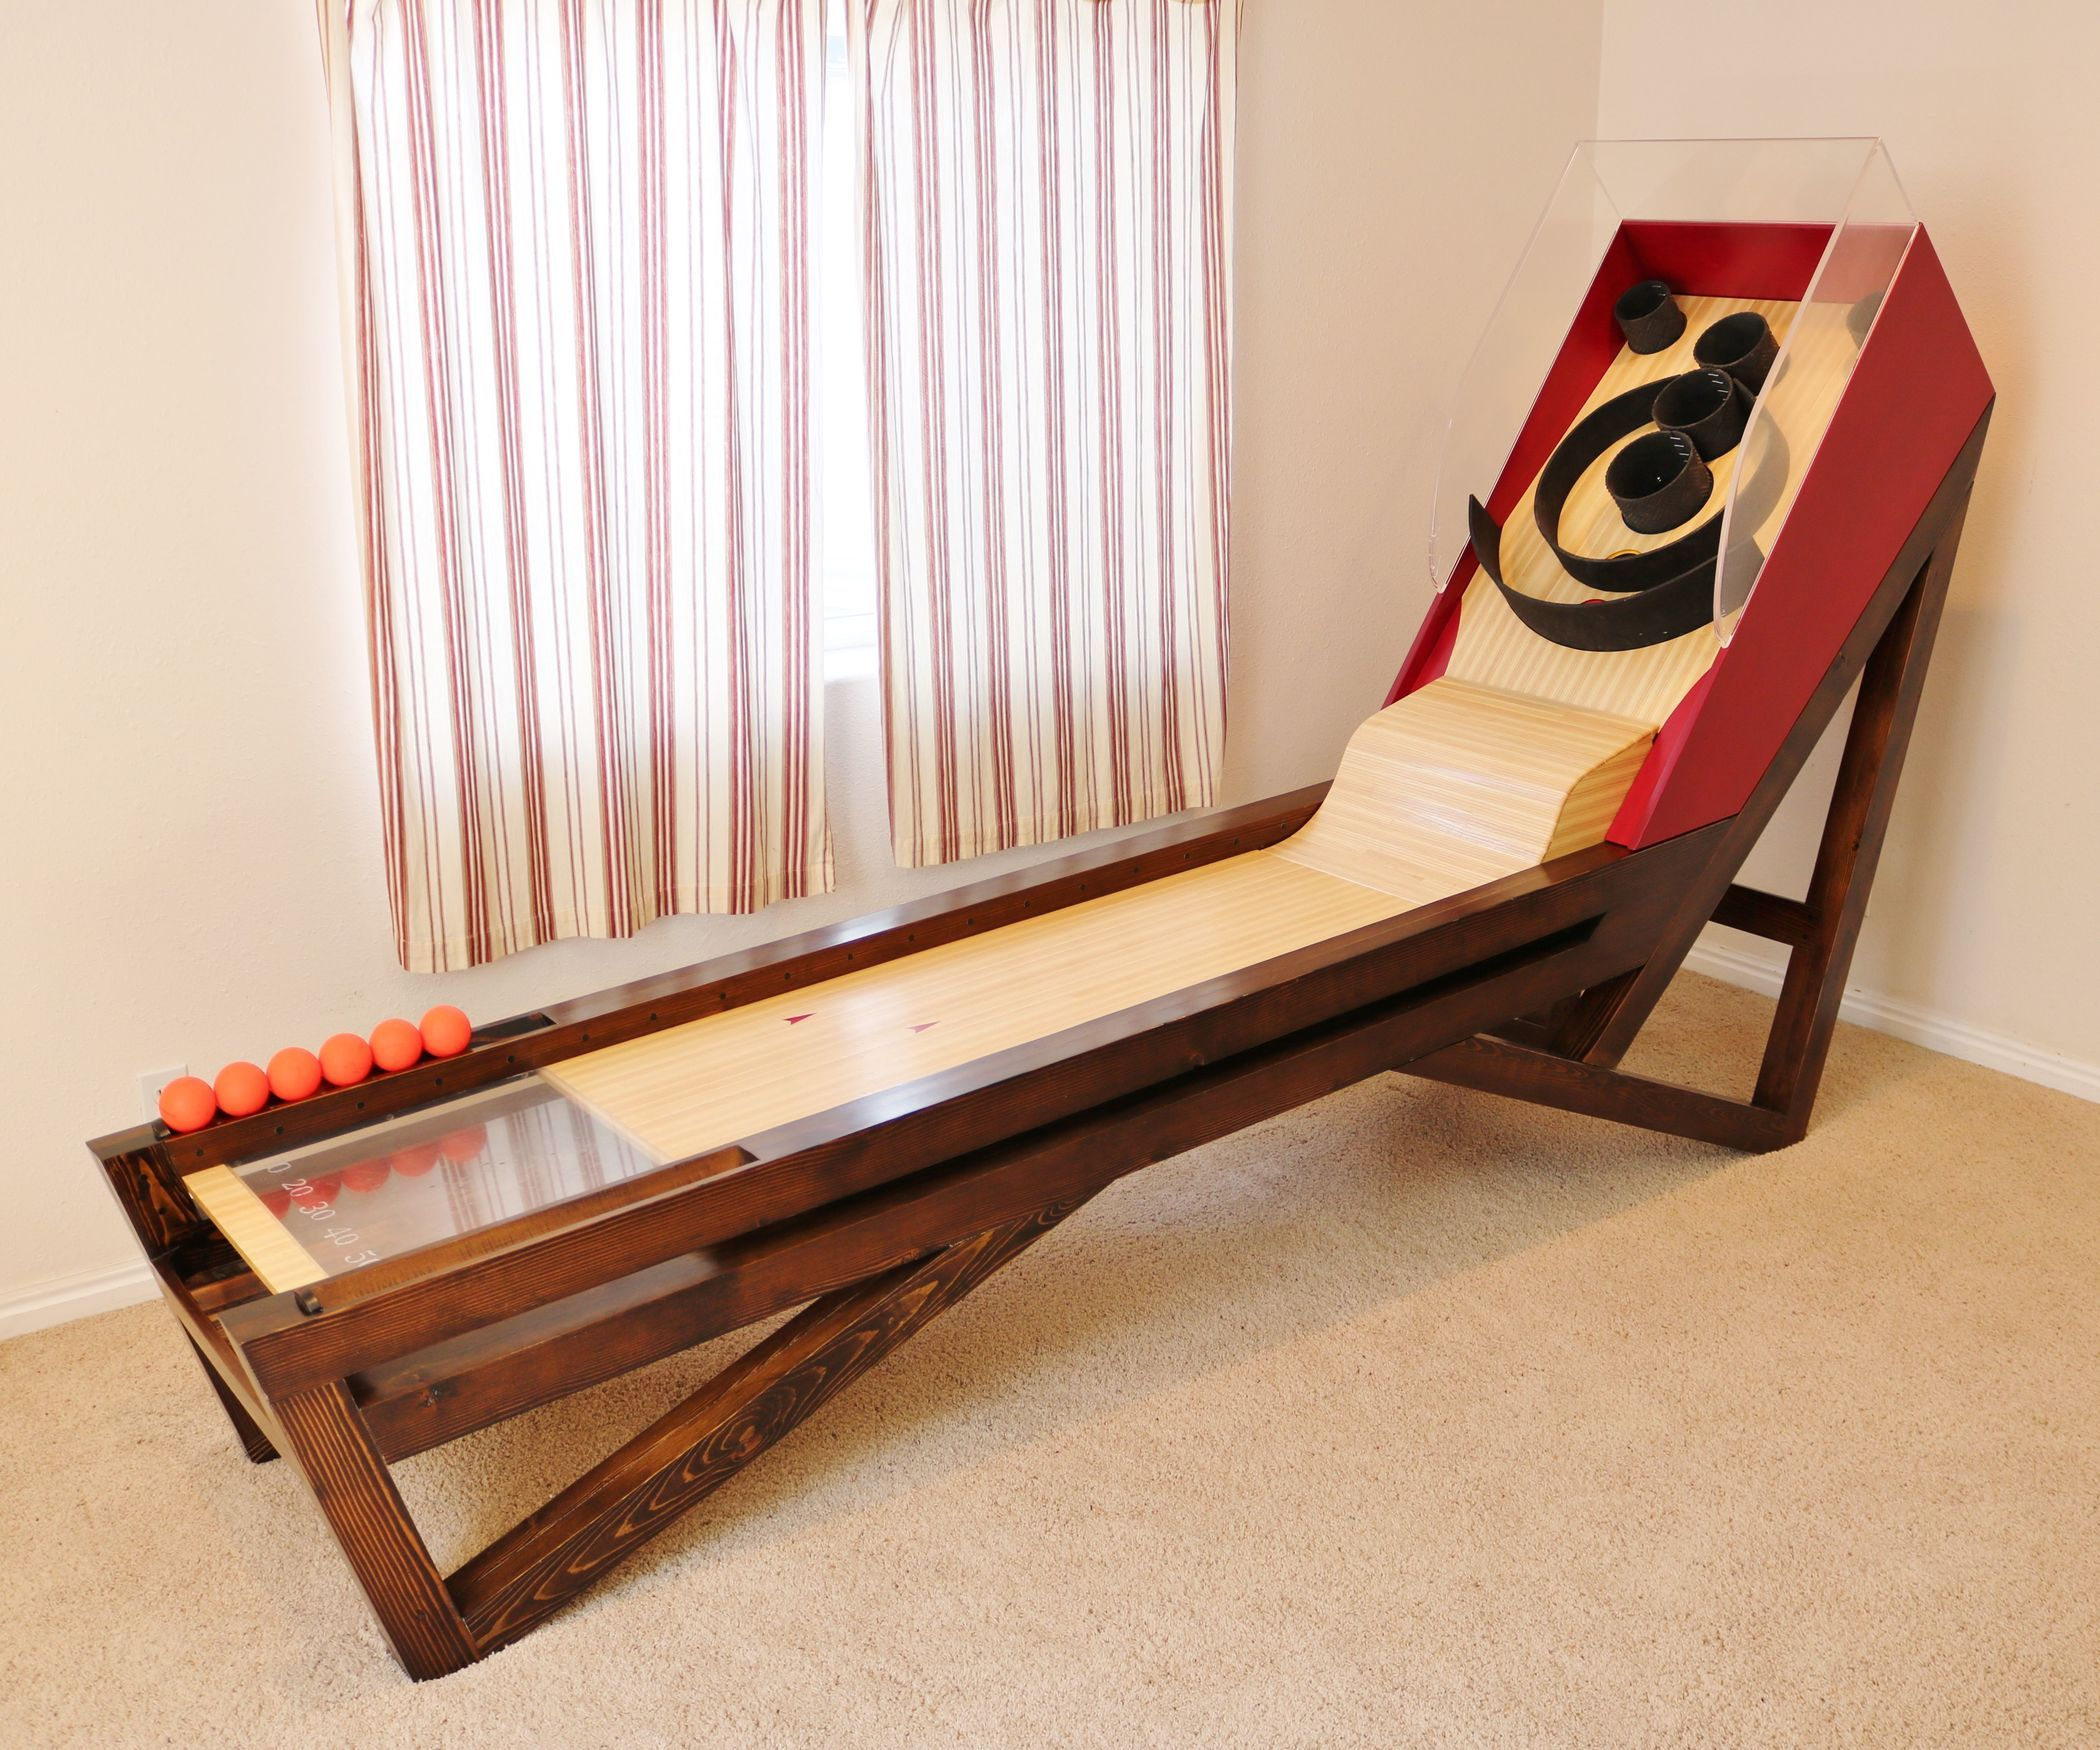 Wooden Skeeball Game   Easy woodworking projects ...